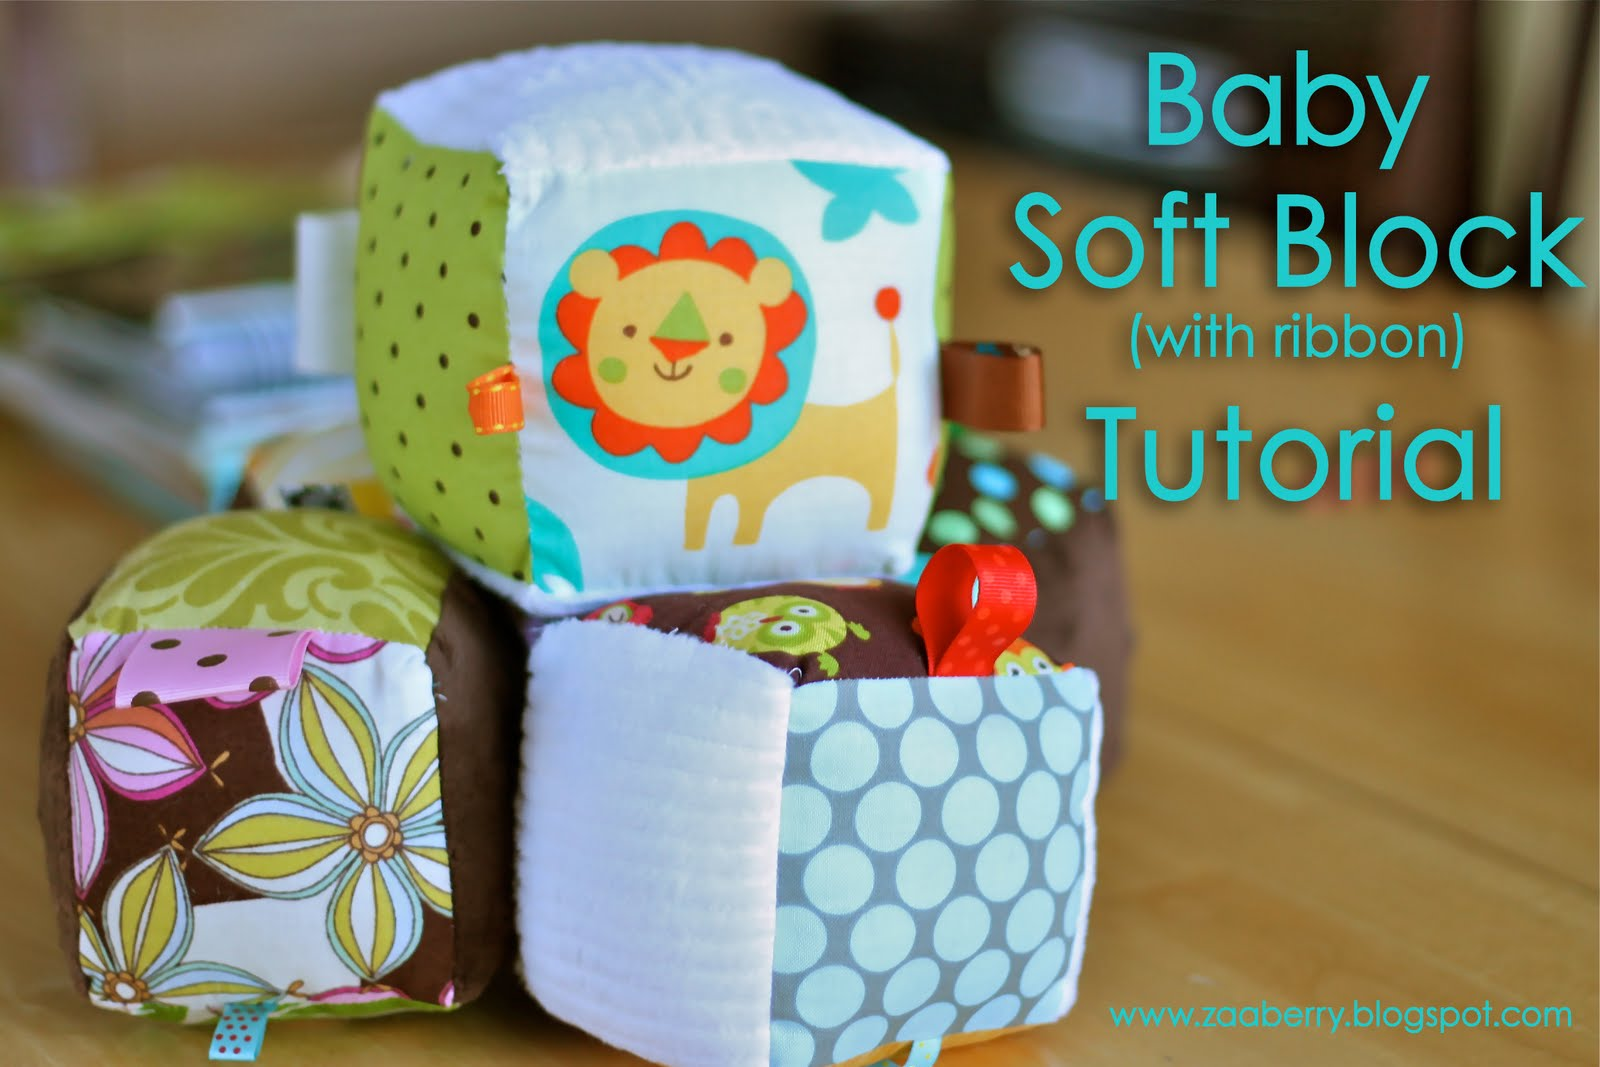 DIY Baby Toy: Soft Blocks. Posted on March 9, By Miriam R. for babies, kids' spaces. I want to start out by saying to those mamas who think you can't sew you CAN! I used to be so intimidated by the sewing machine. Then two years ago I got pregnant with my second daughter, Lilah.